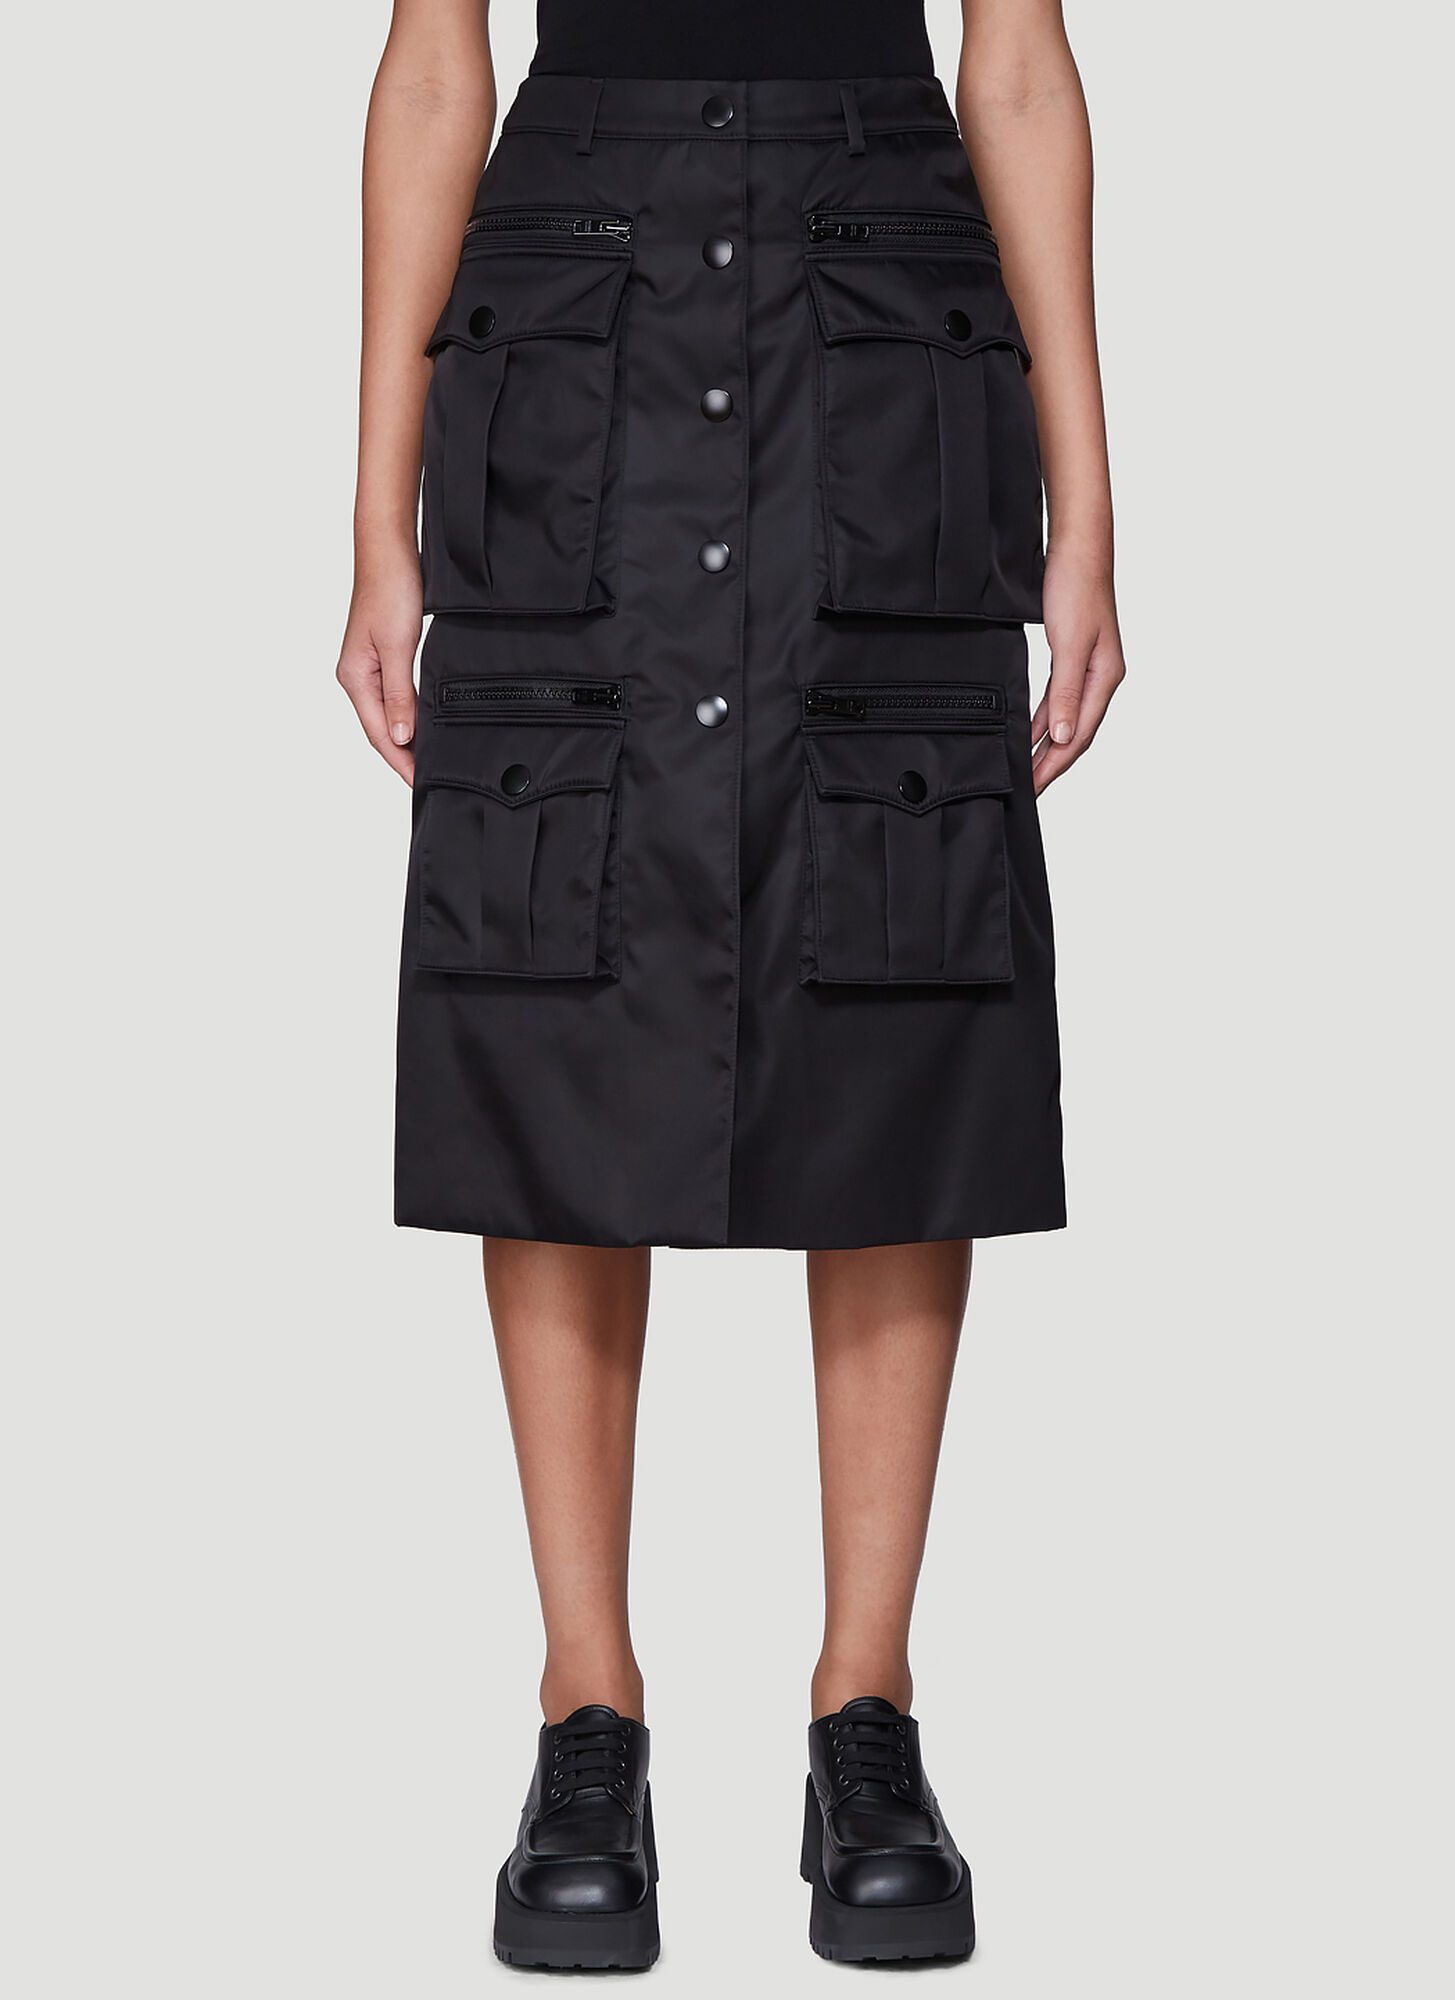 Prada Nylon Gabardine Skirt in Black